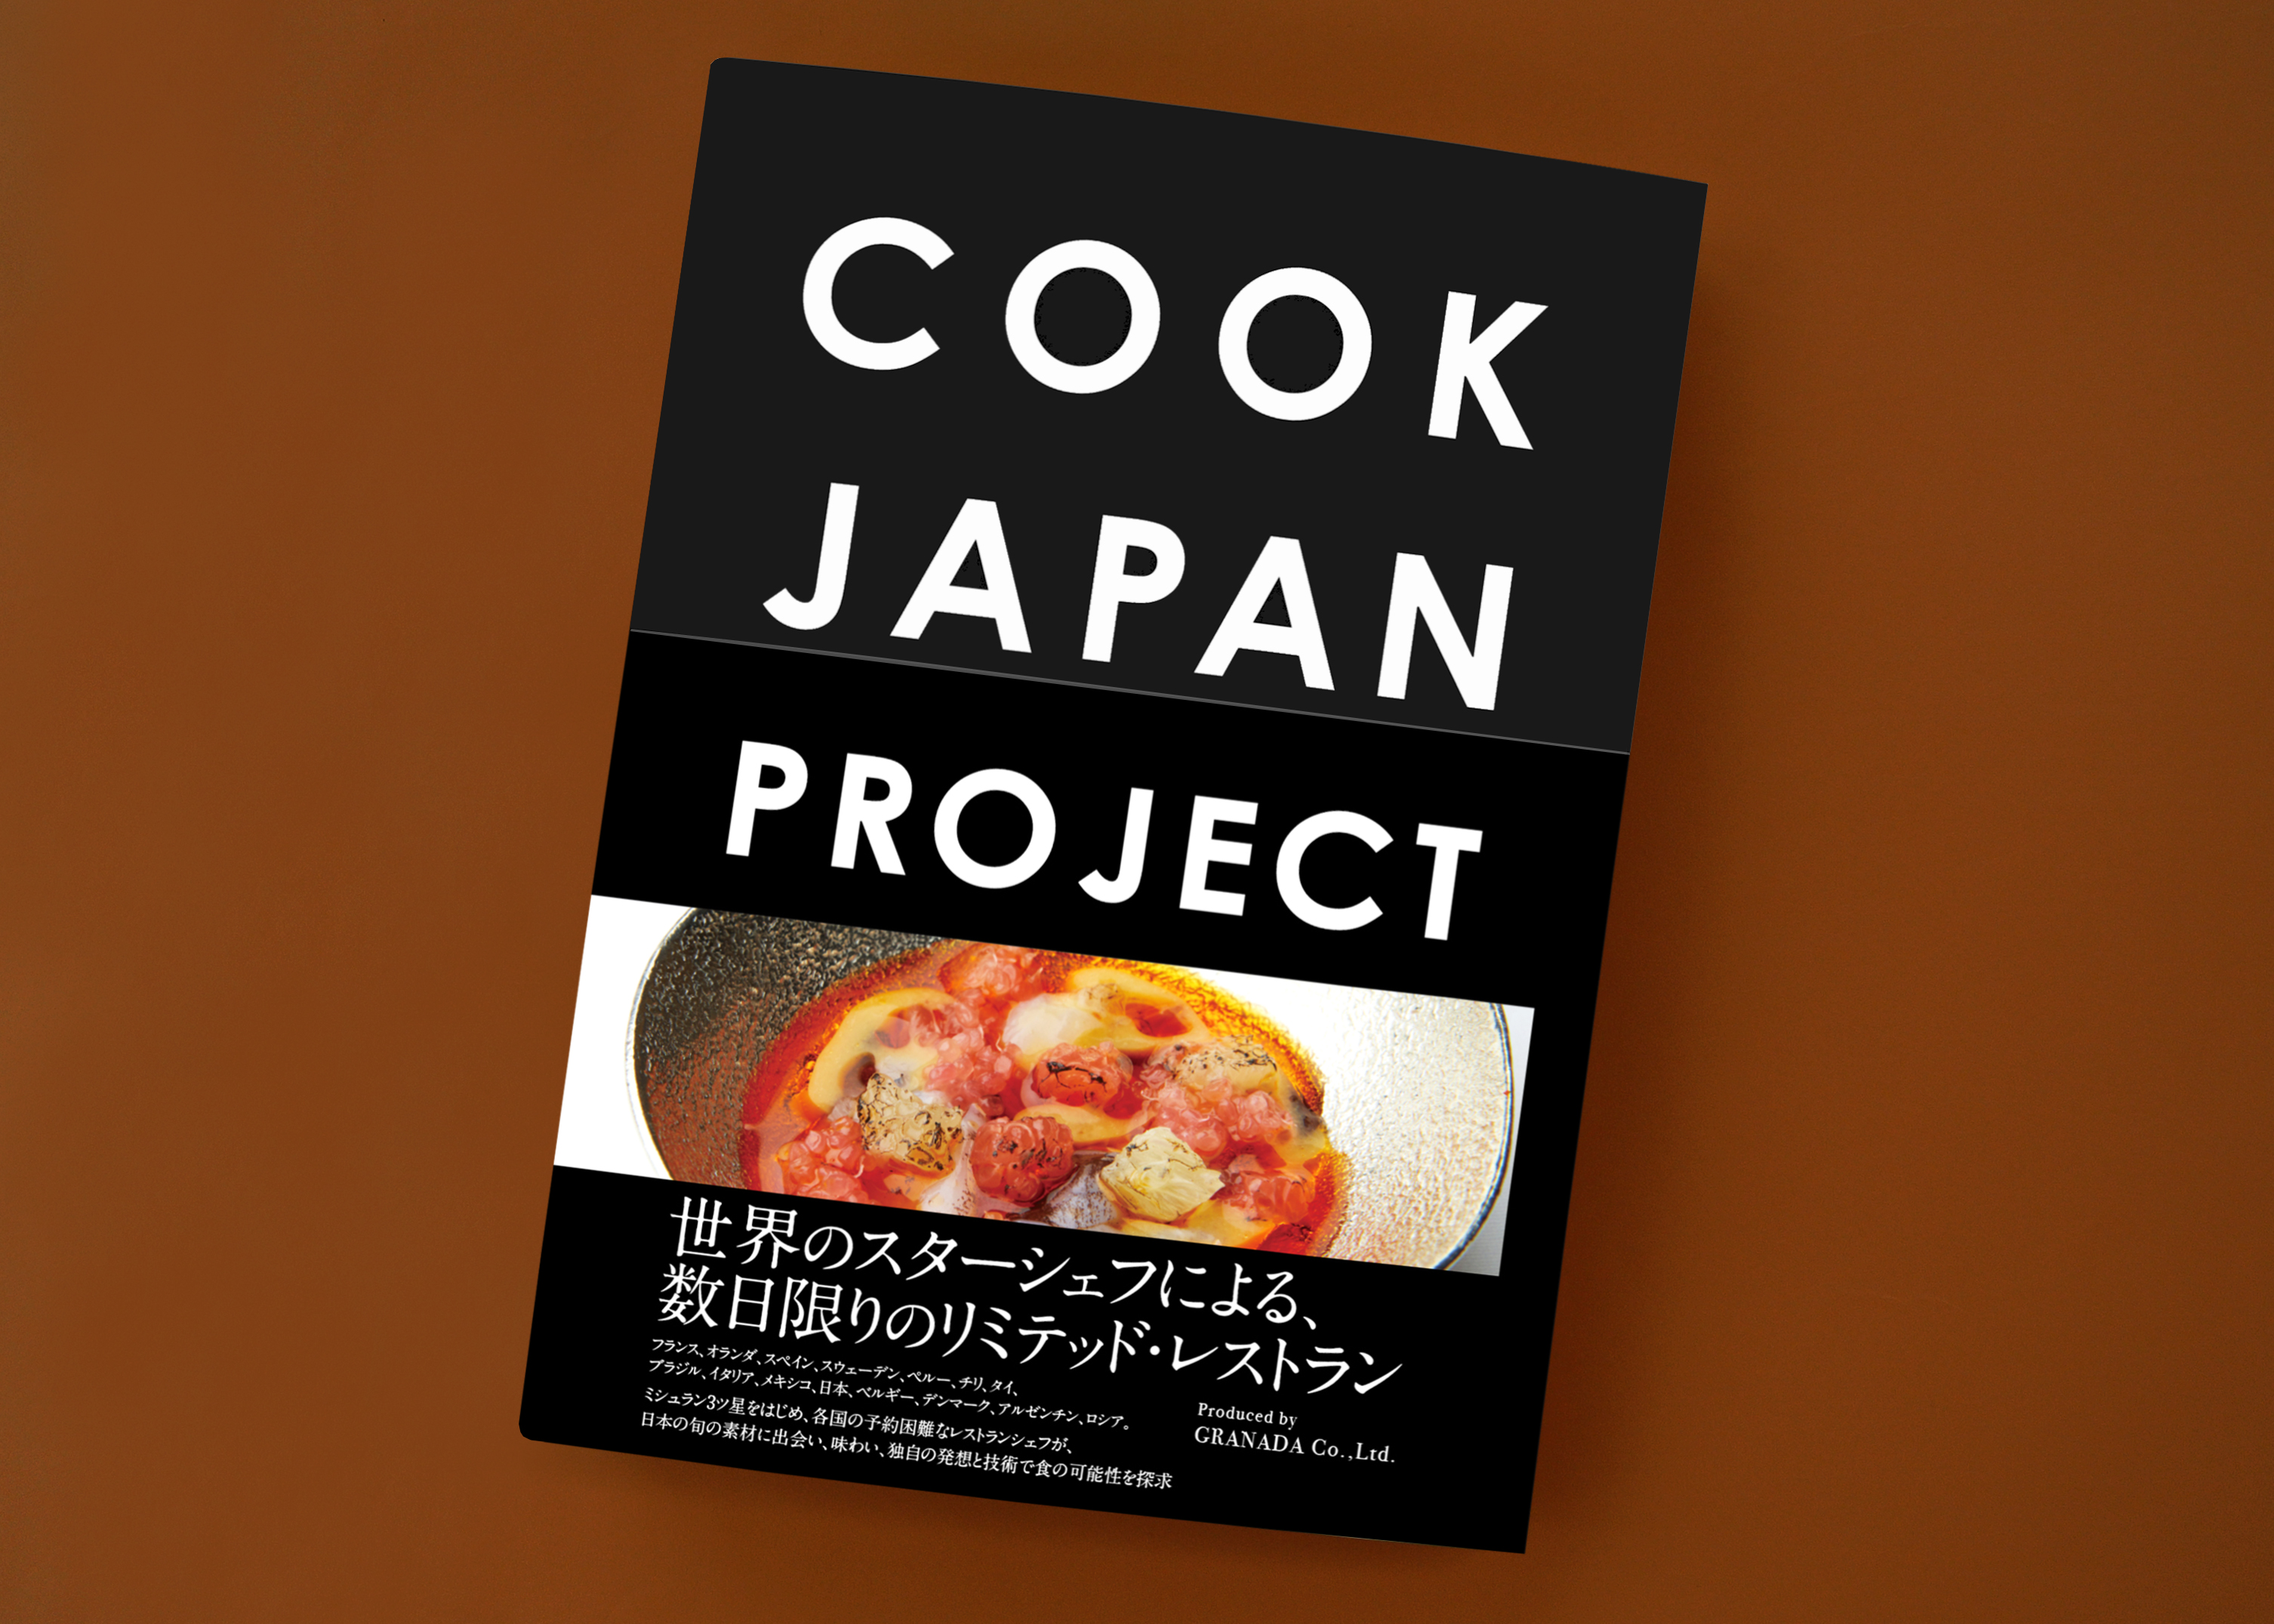 COOK JAPAN PROJECT